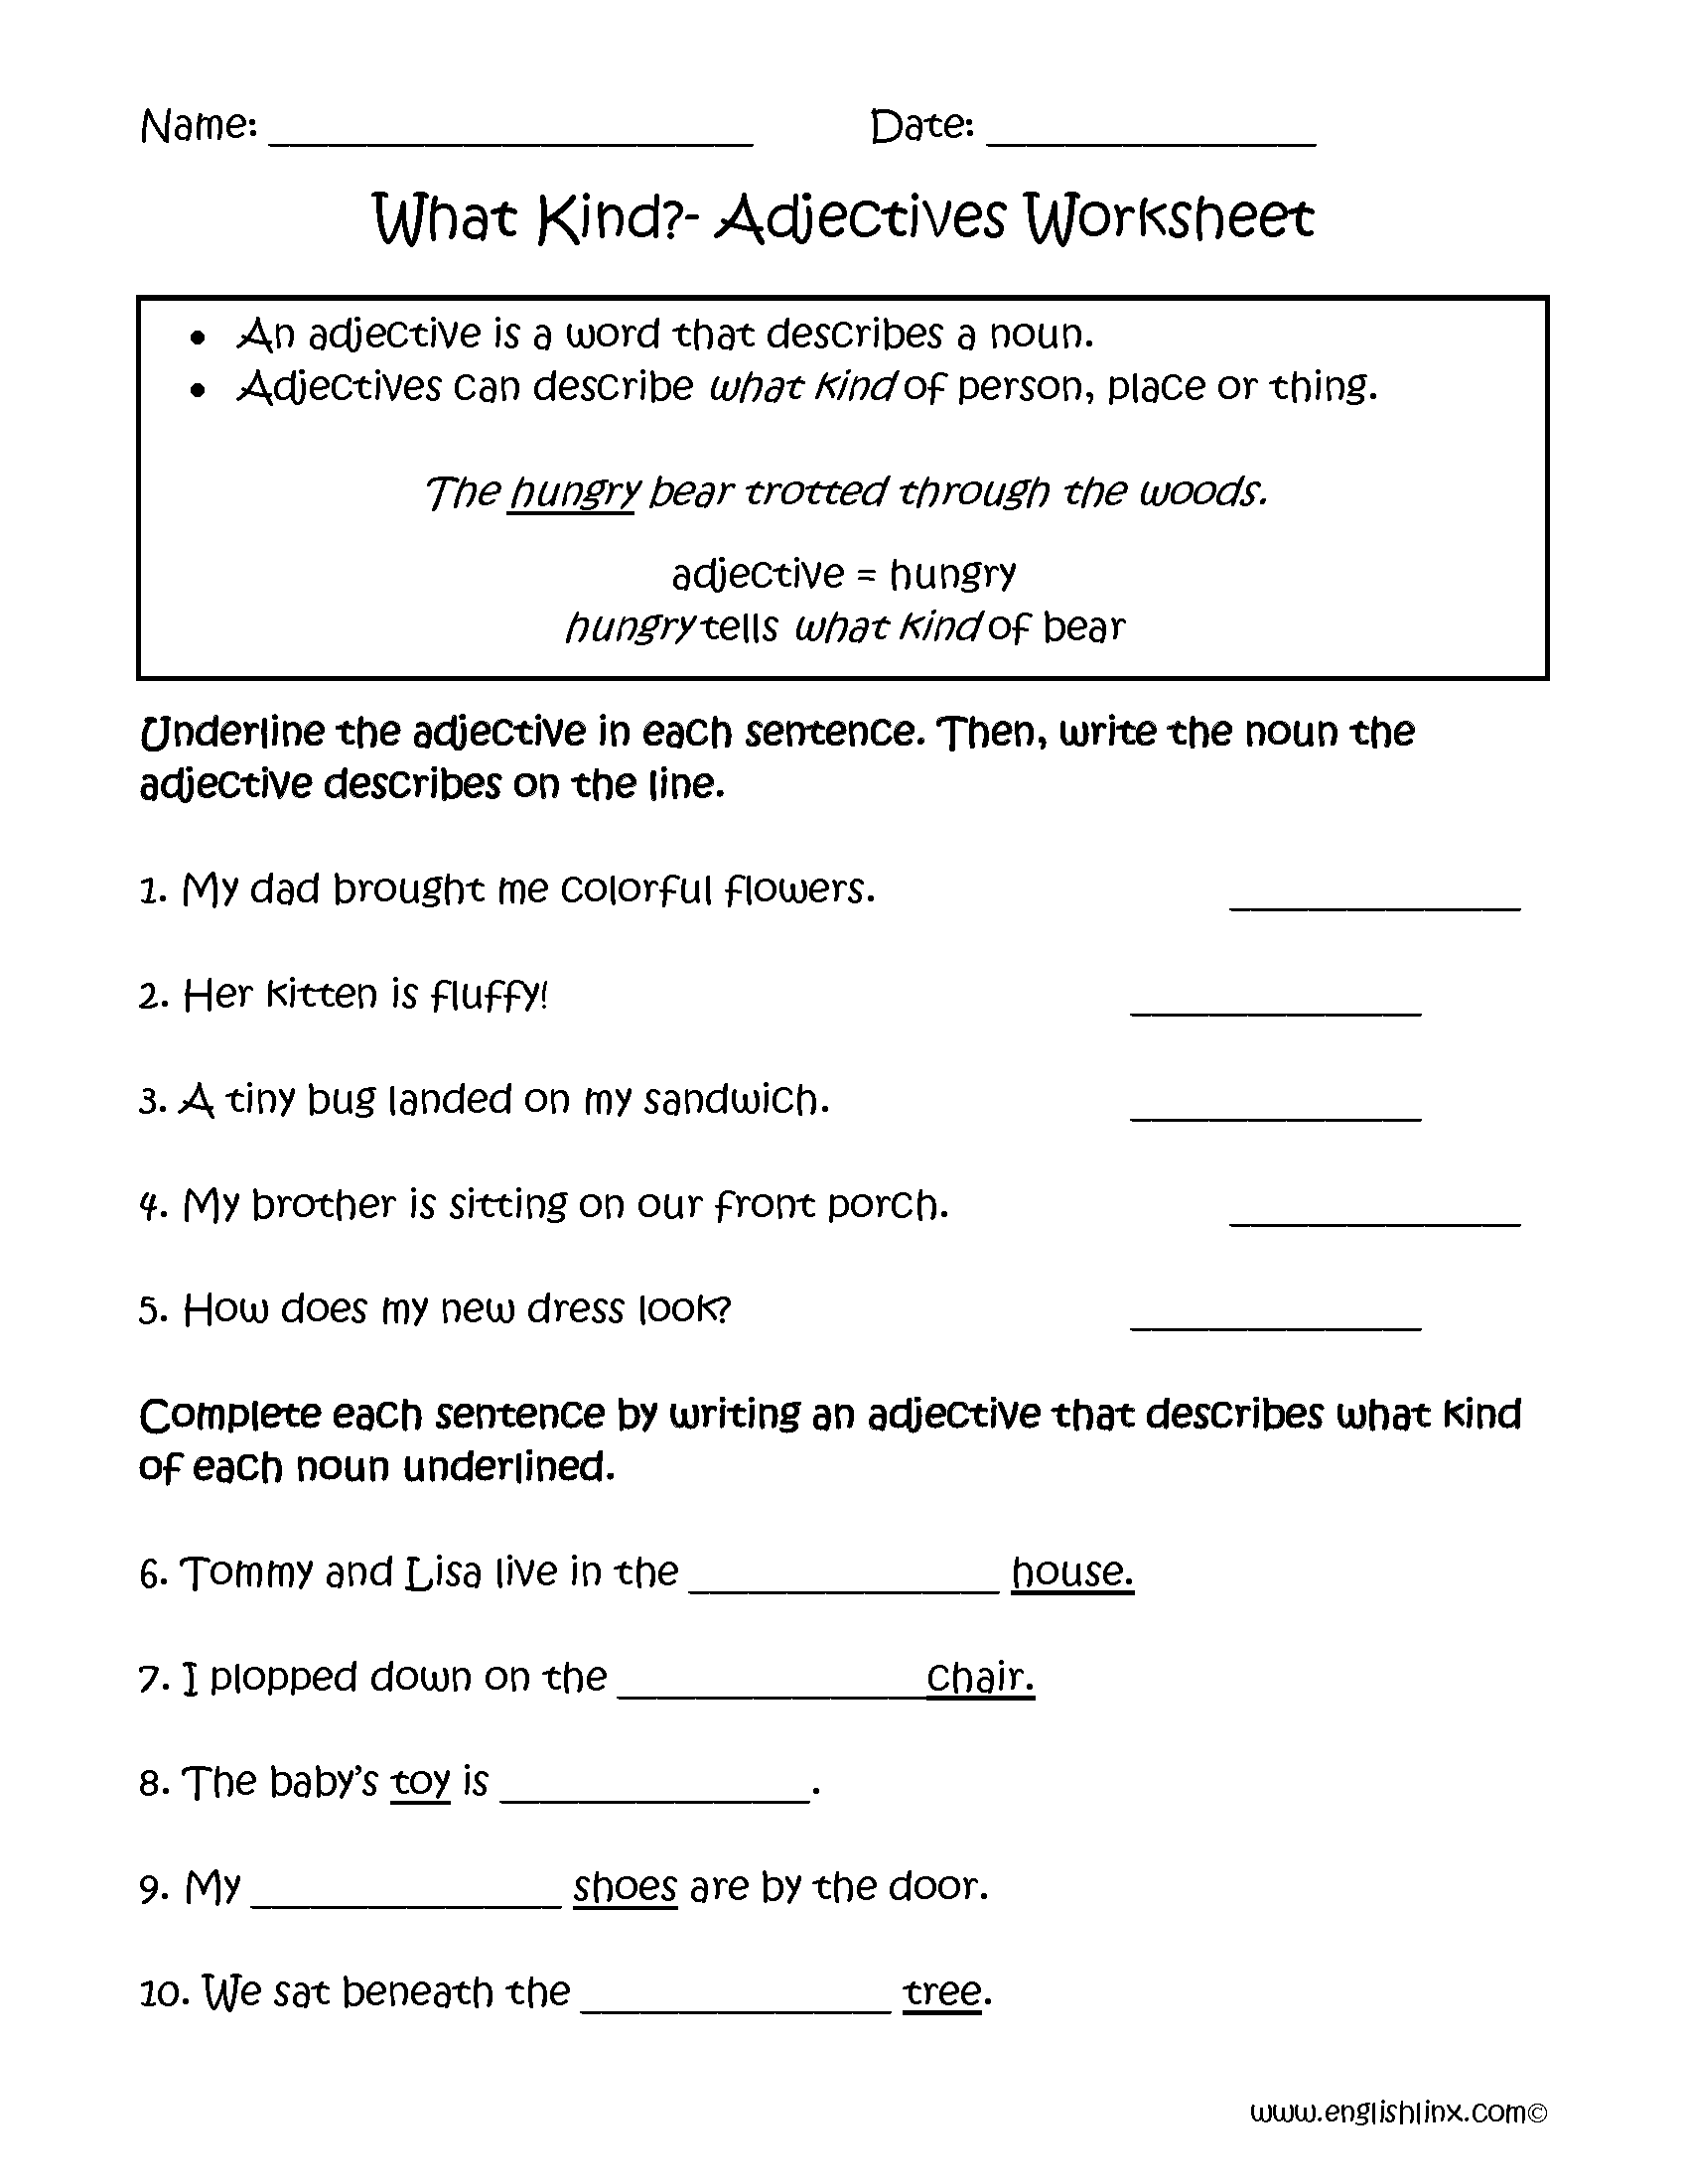 Adjective Worksheets For Middle School